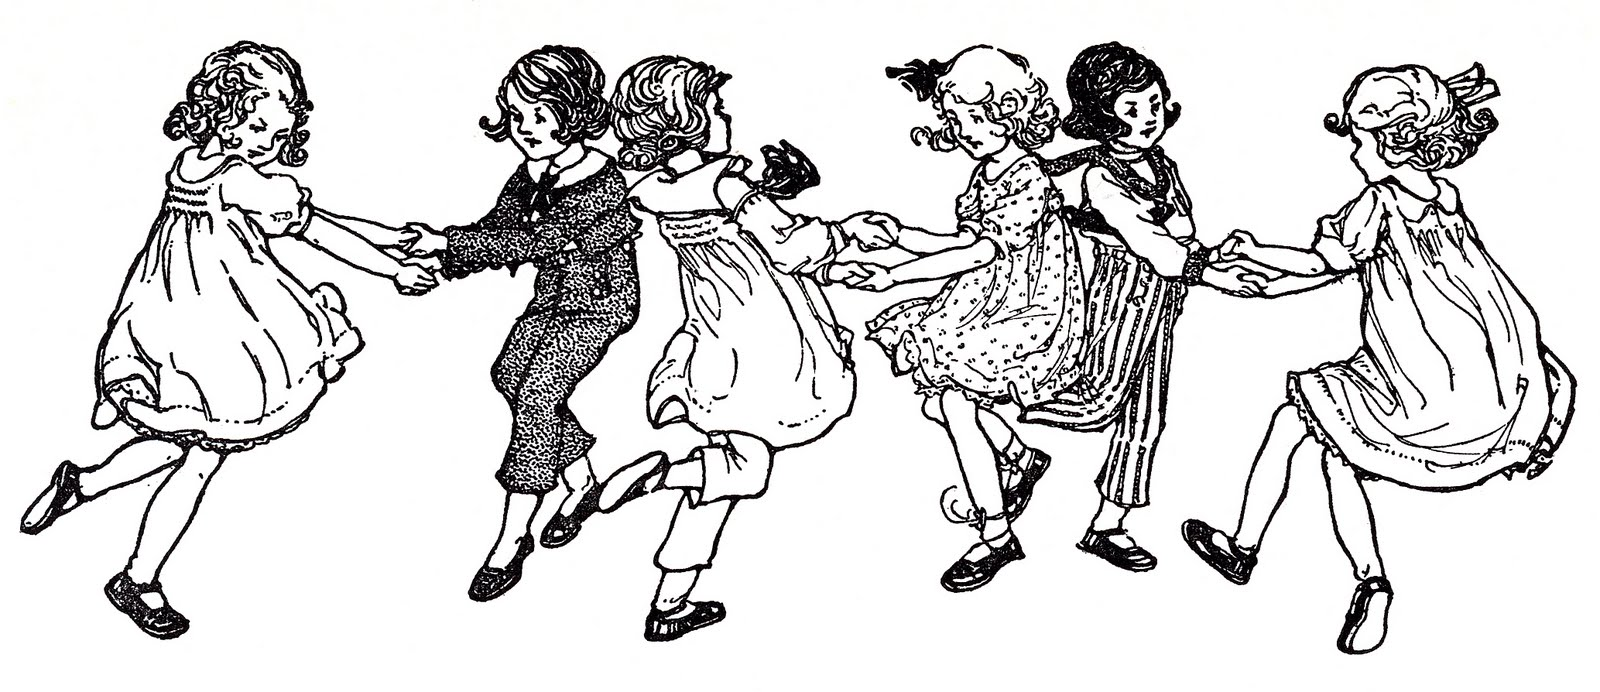 Vintage image children swedish. Dancing clipart children's banner free